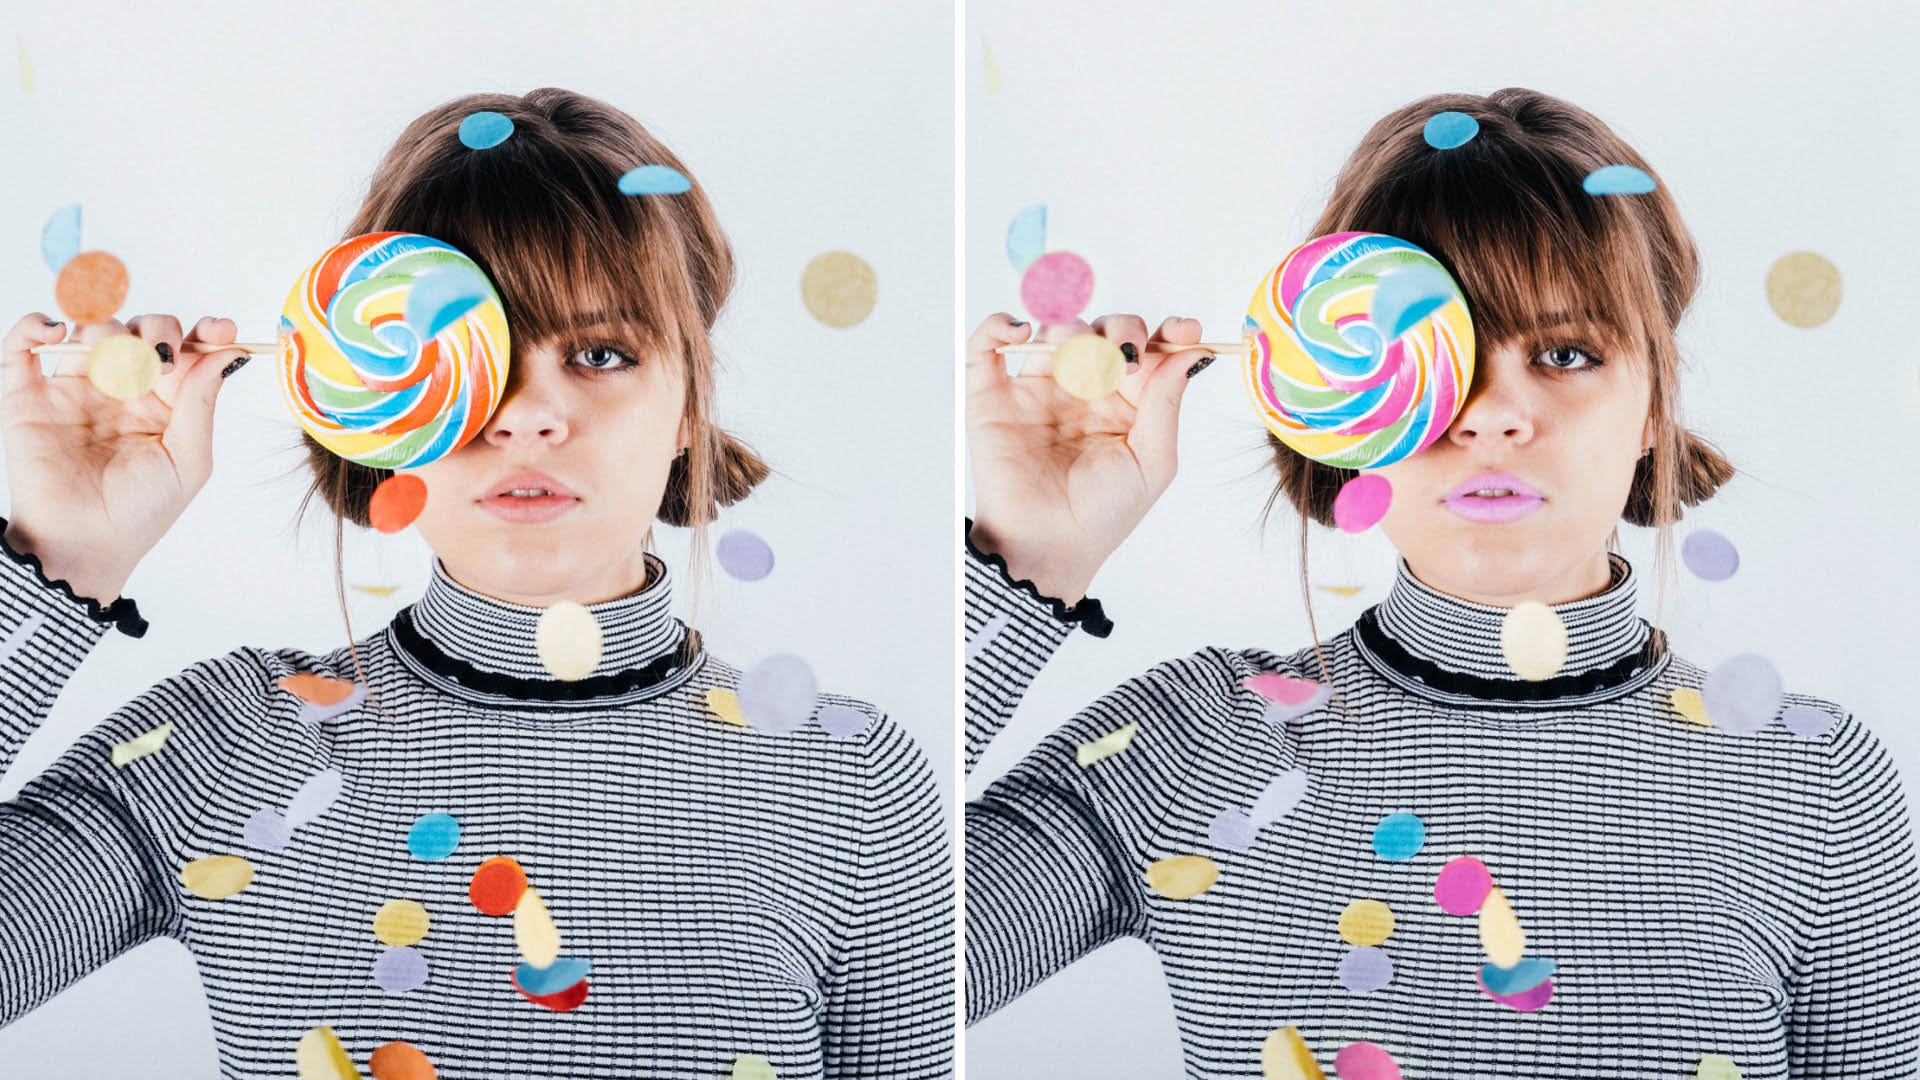 Different colour versions of a woman holding a lollipop in front of her right eye